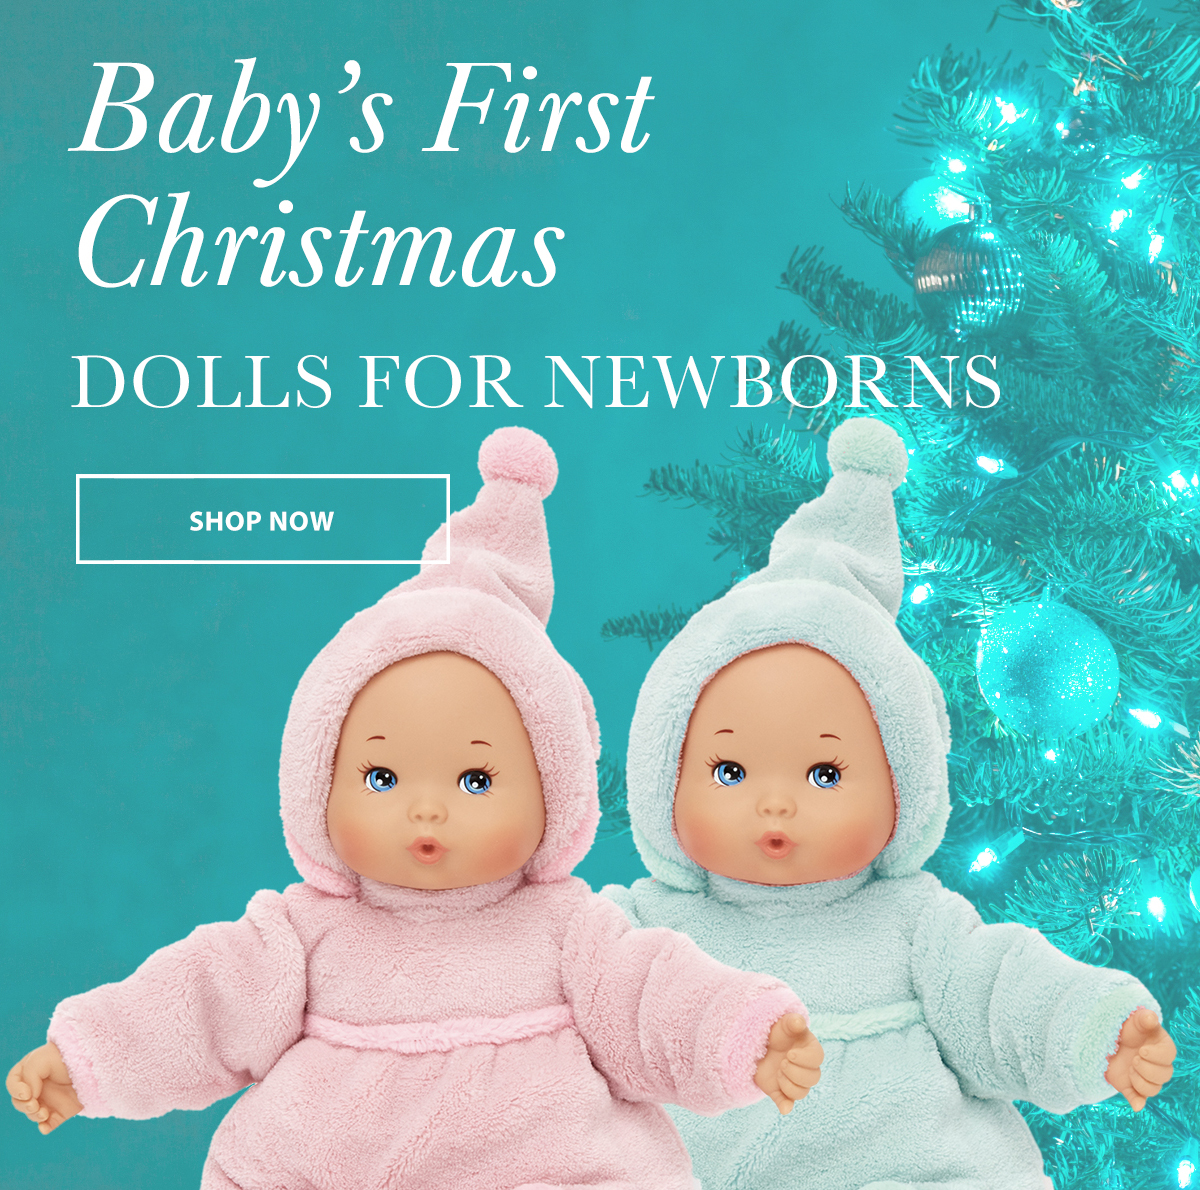 Click to shop for Baby's First dolls